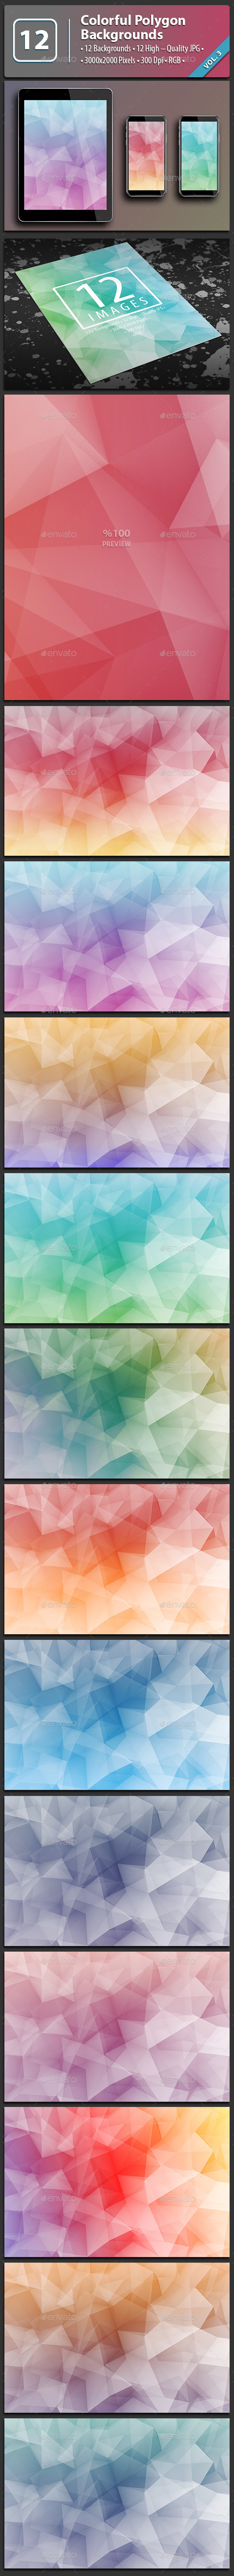 12 Abstract Polygon Backgrounds Vol.3 - Abstract Backgrounds